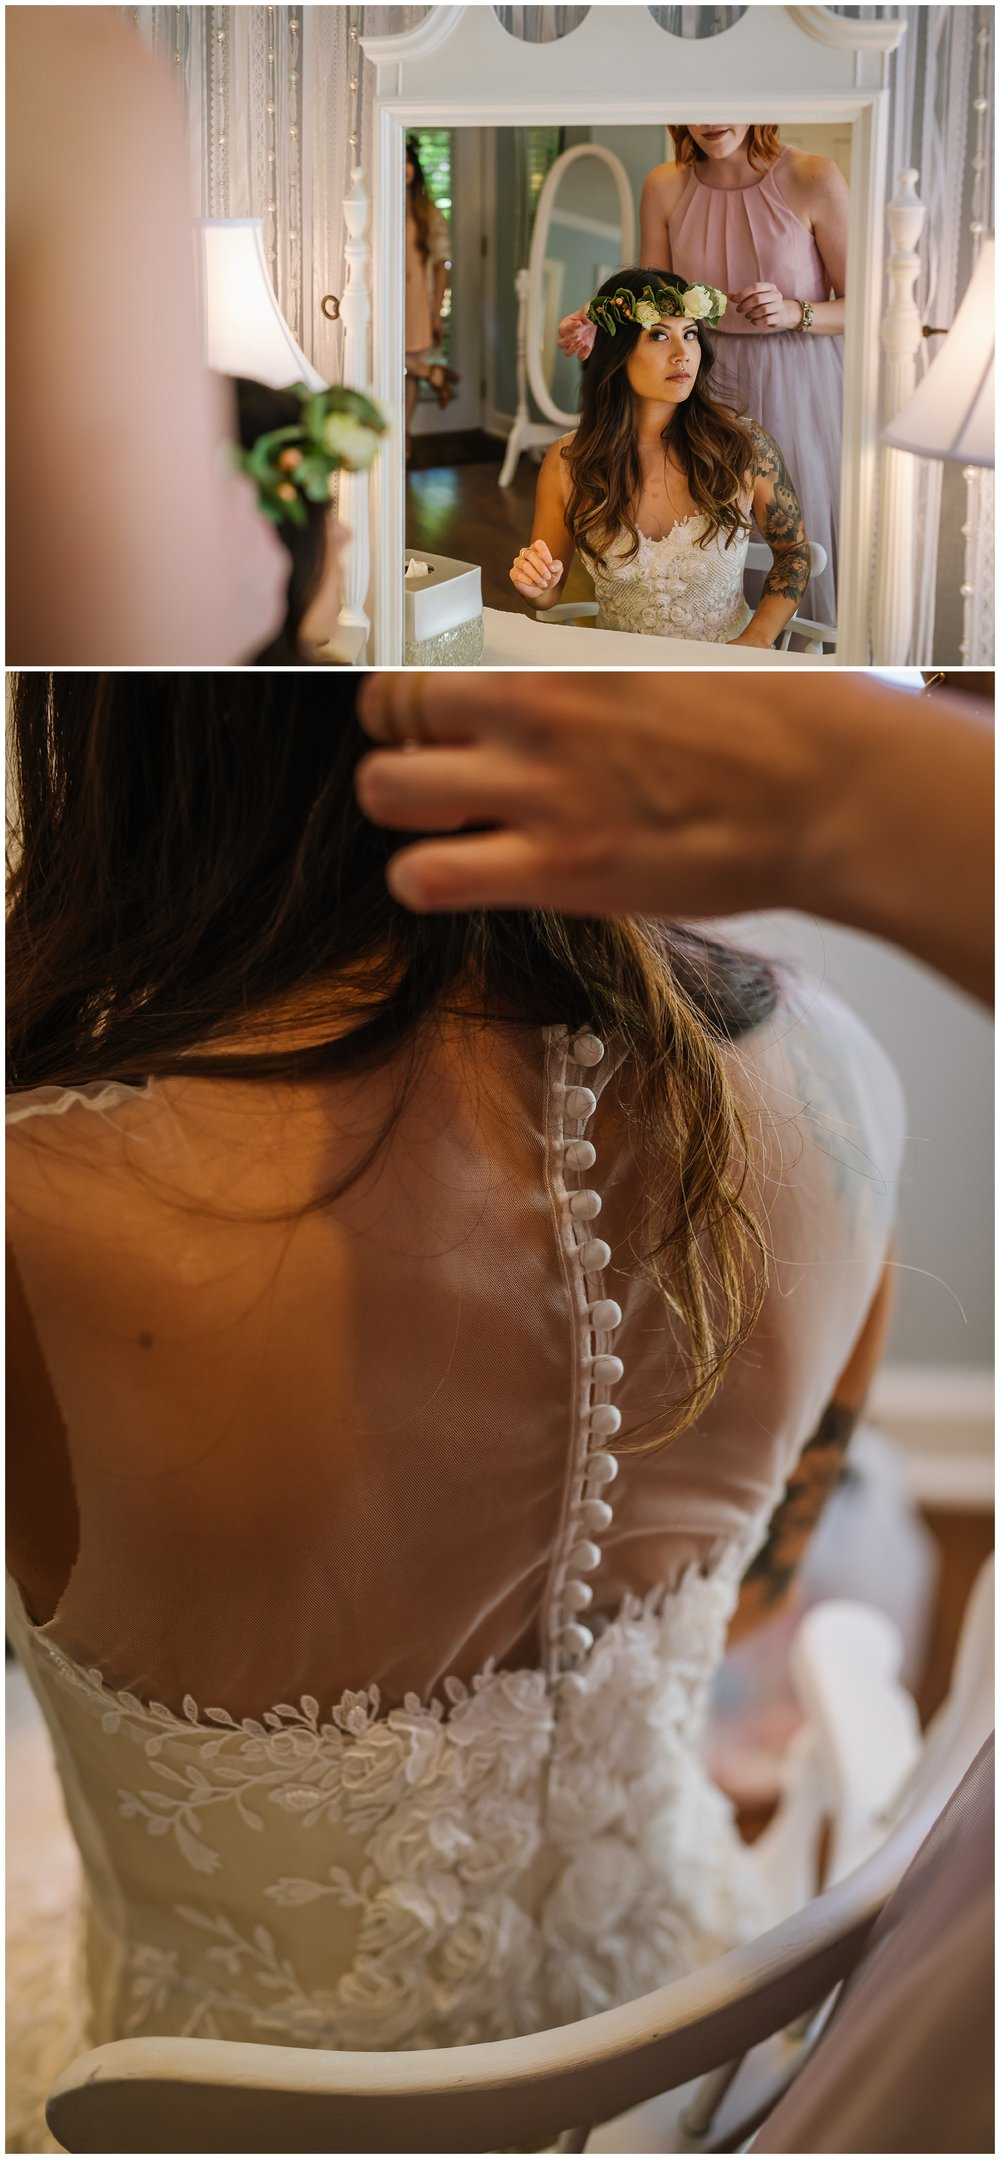 Tampa-wedding-photographer-cross-creek-ranch-bhldn-anthrolpologie-bohemian-tattoos_0073.jpg